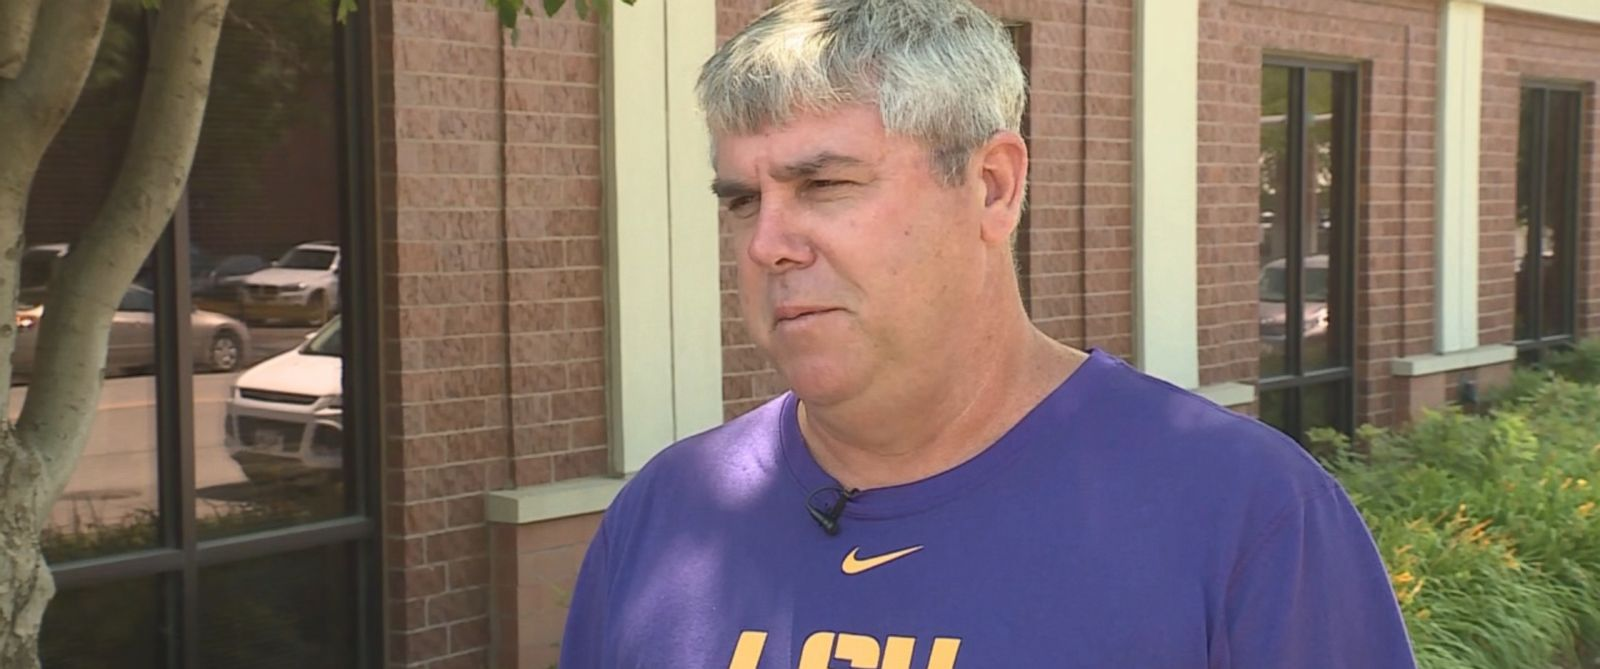 VIDEO: LSU supporters revived a Florida fan during Monday's College World Series game.